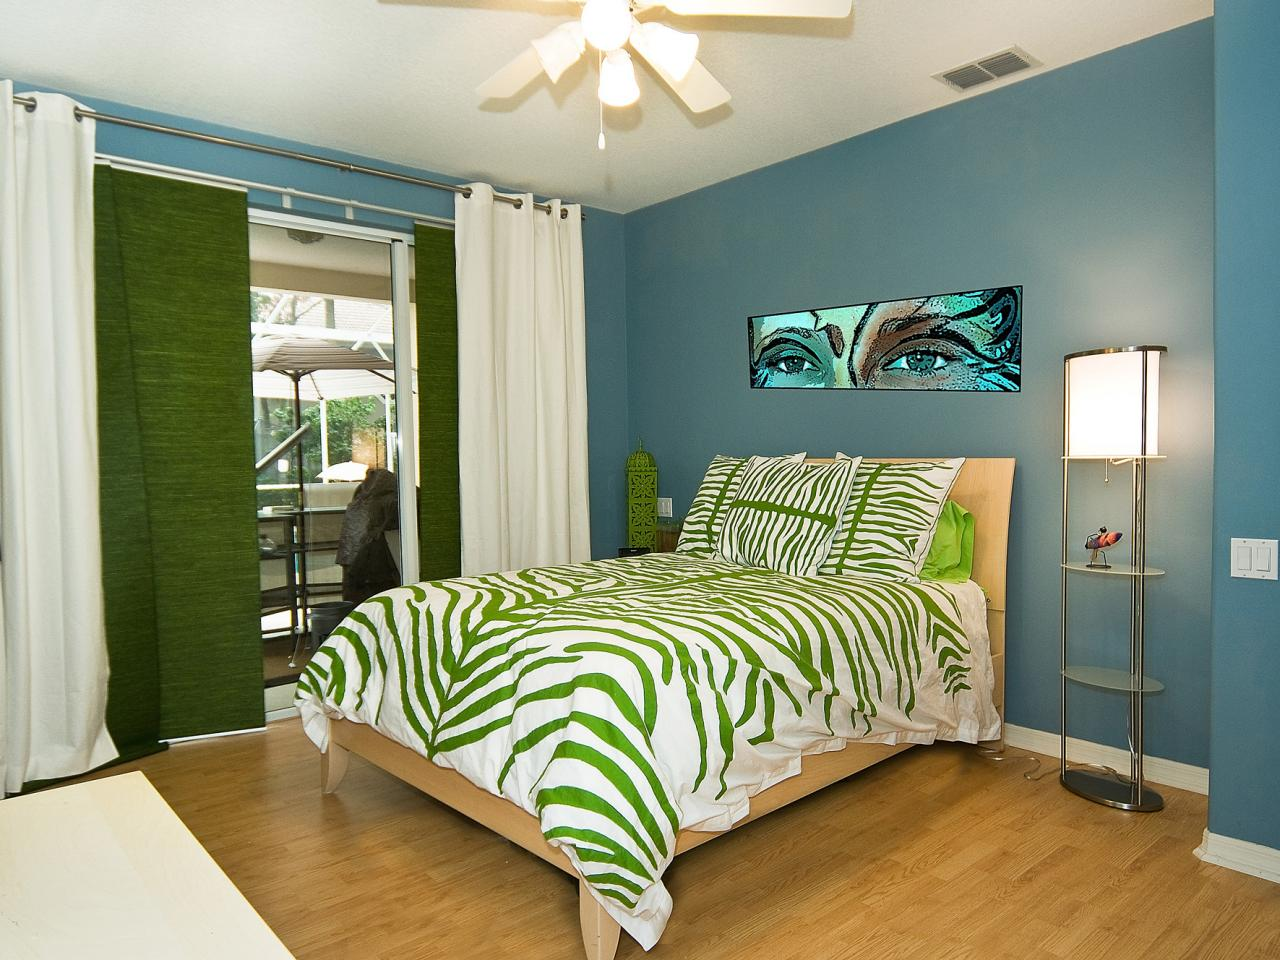 Sassy and sophisticated teen and tween bedroom ideas for Bedroom theme ideas for teenage girls